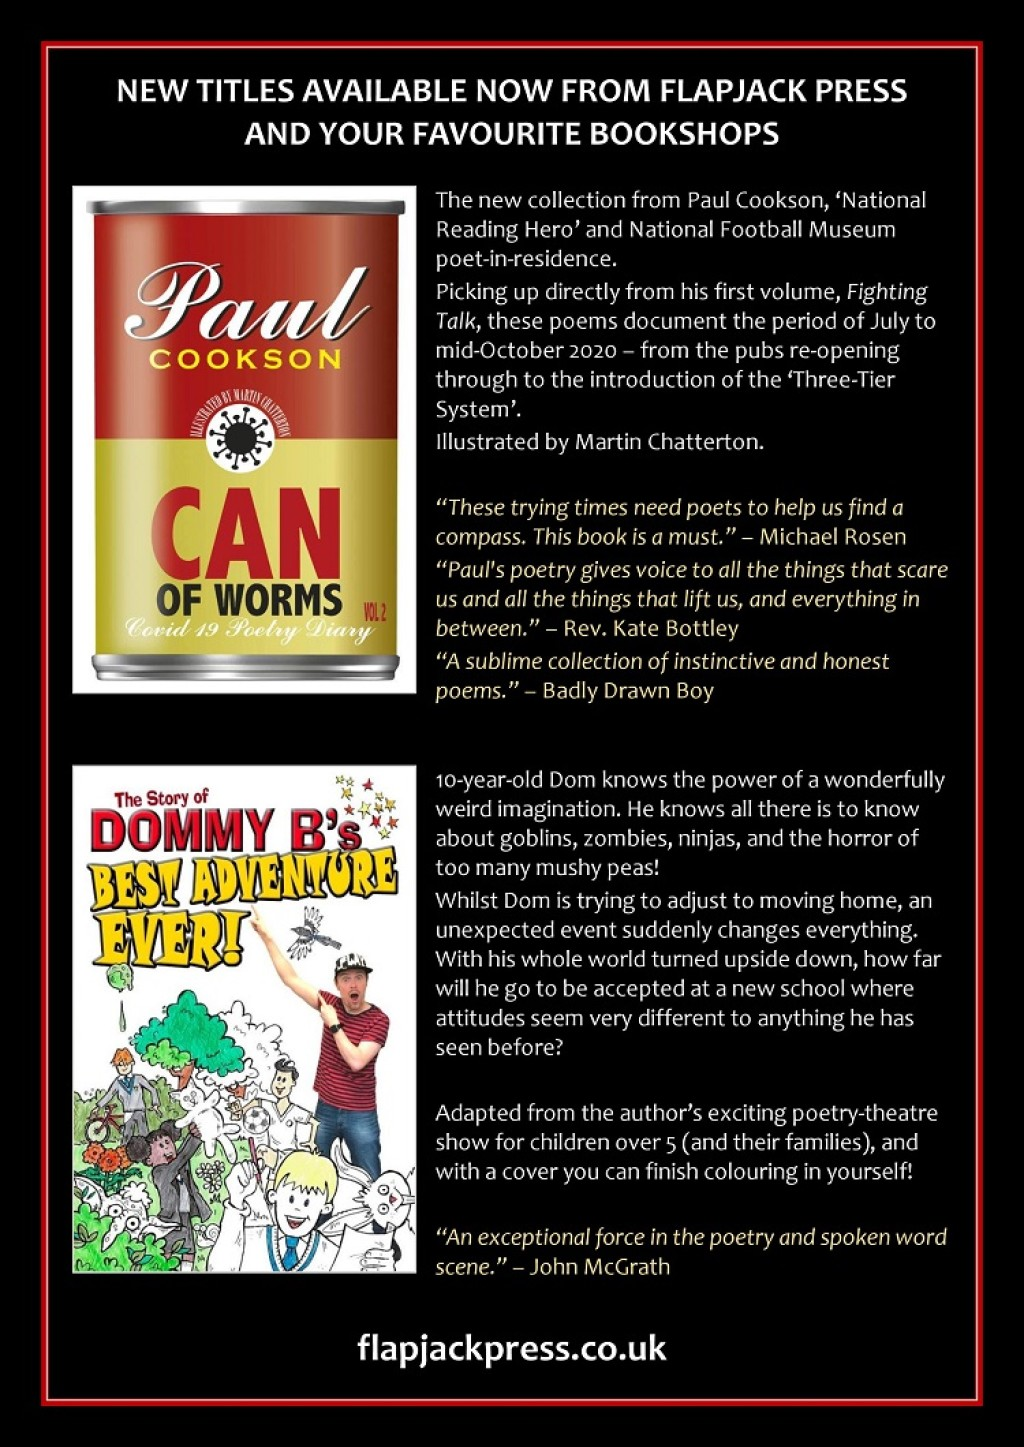 Out Now! Can of Worms by Paul Cookson and Best Adventure Ever! by Dommy B